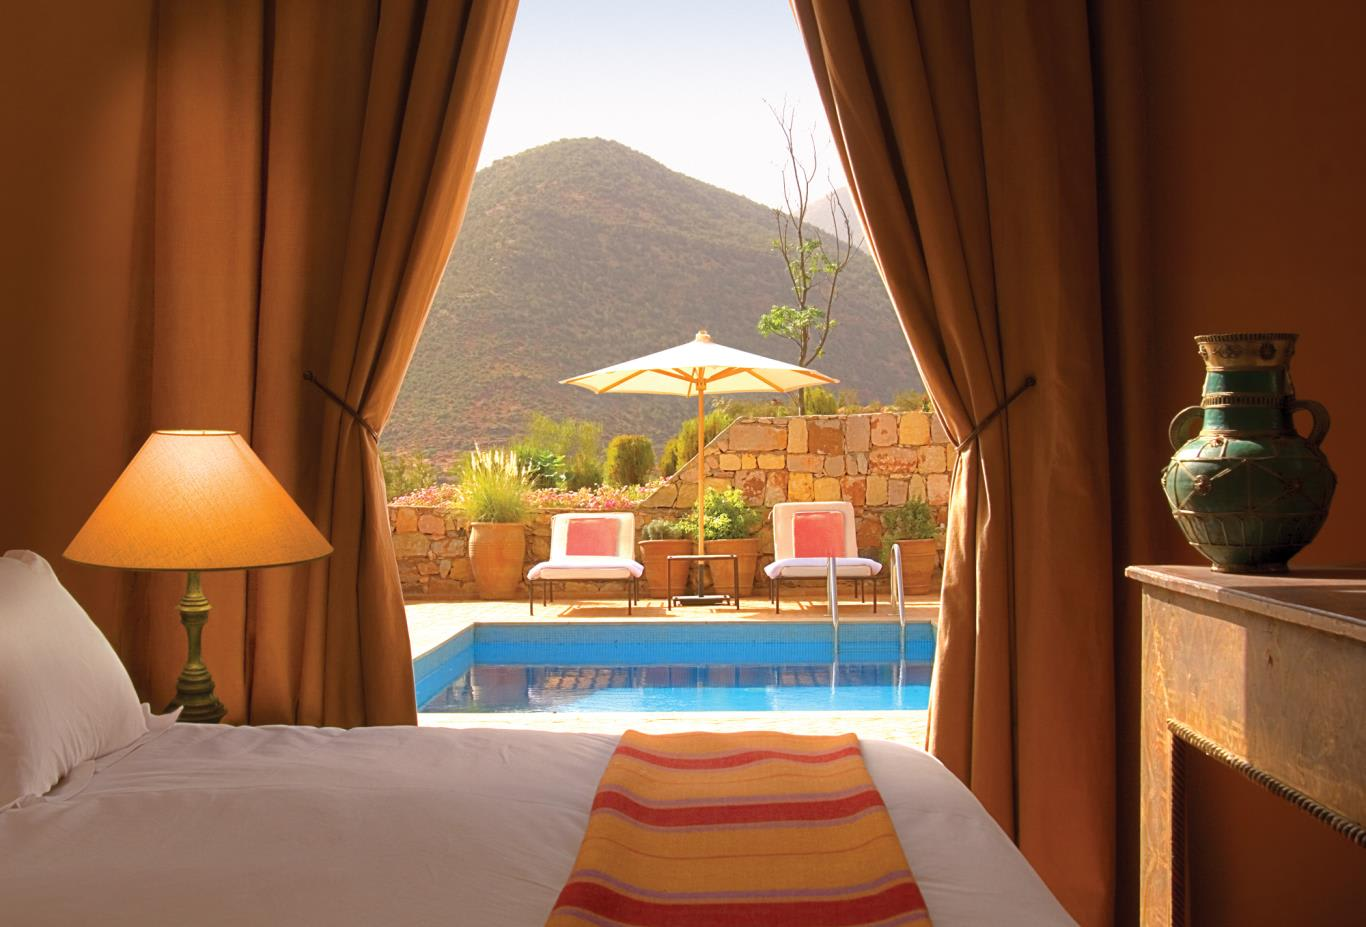 Deluxe-Suite-with-Pool